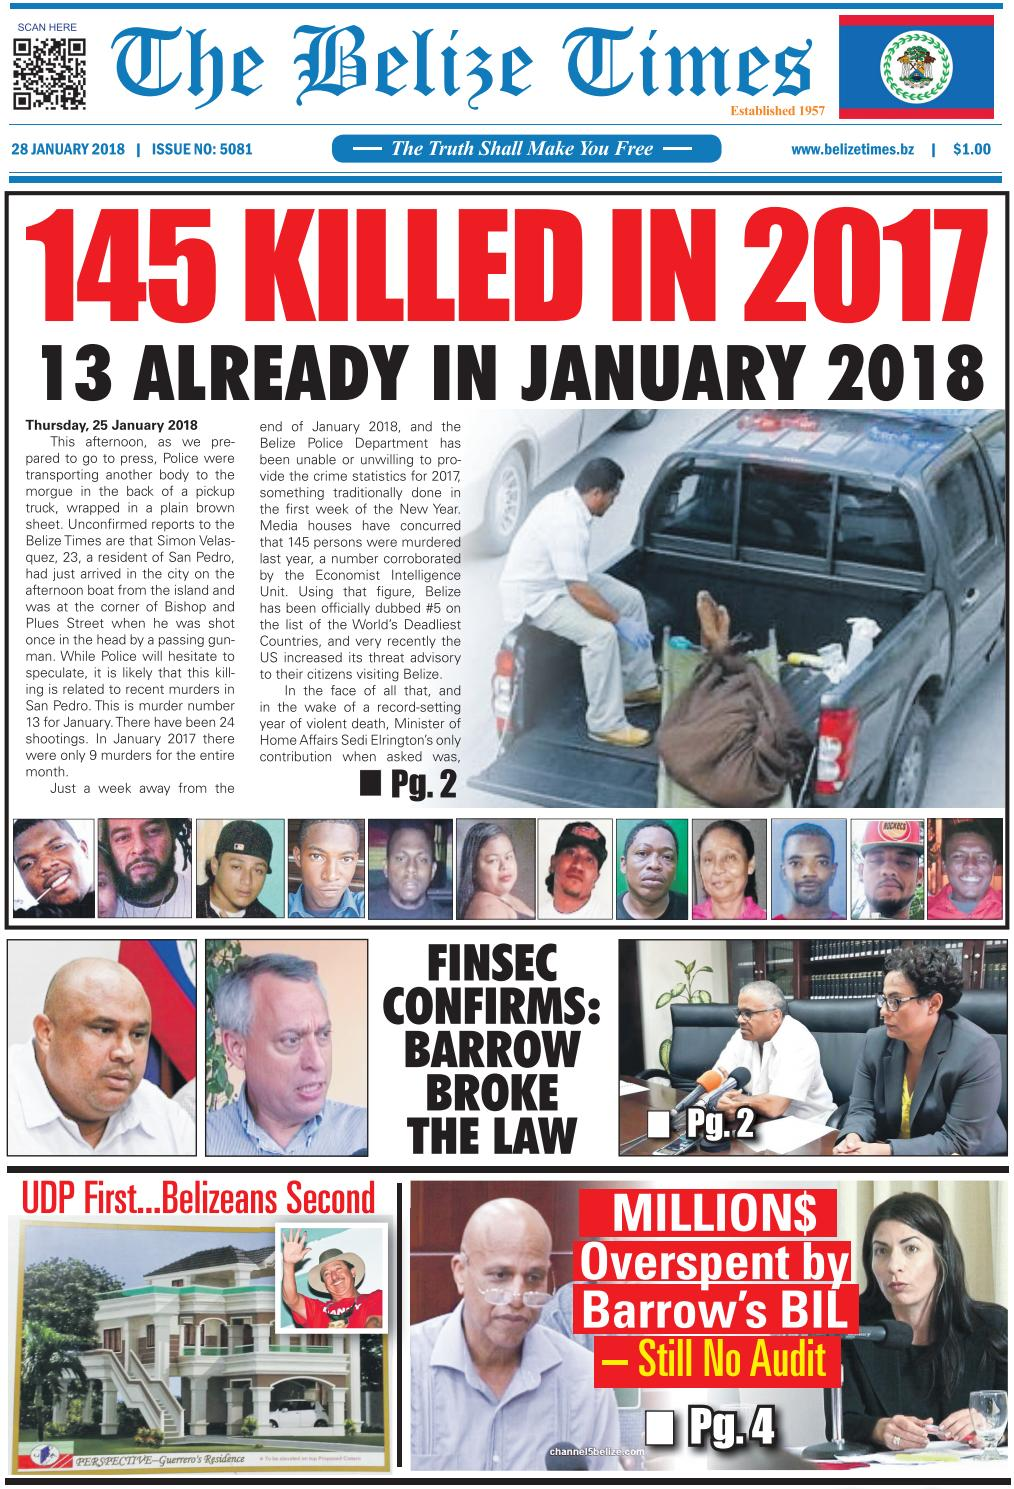 Belize Times January 28, 2018 by Belize Times Press - issuu